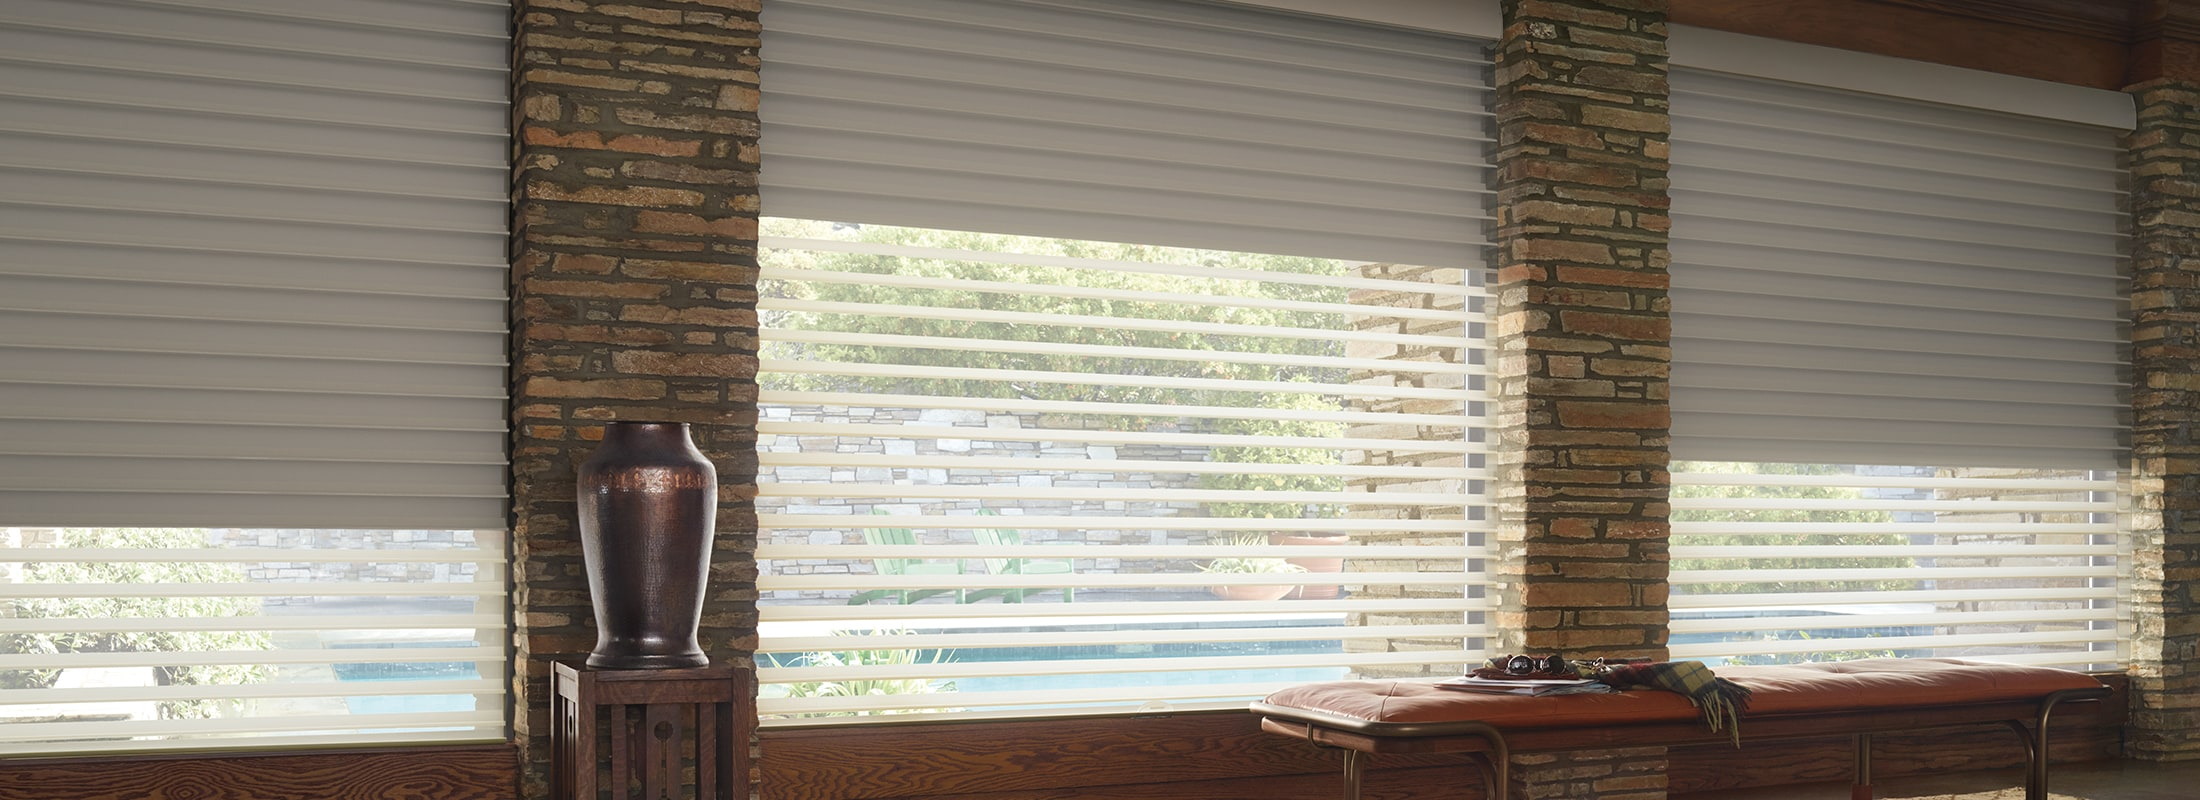 Manually Operated Window Blinds & Shades | Hunter Douglas